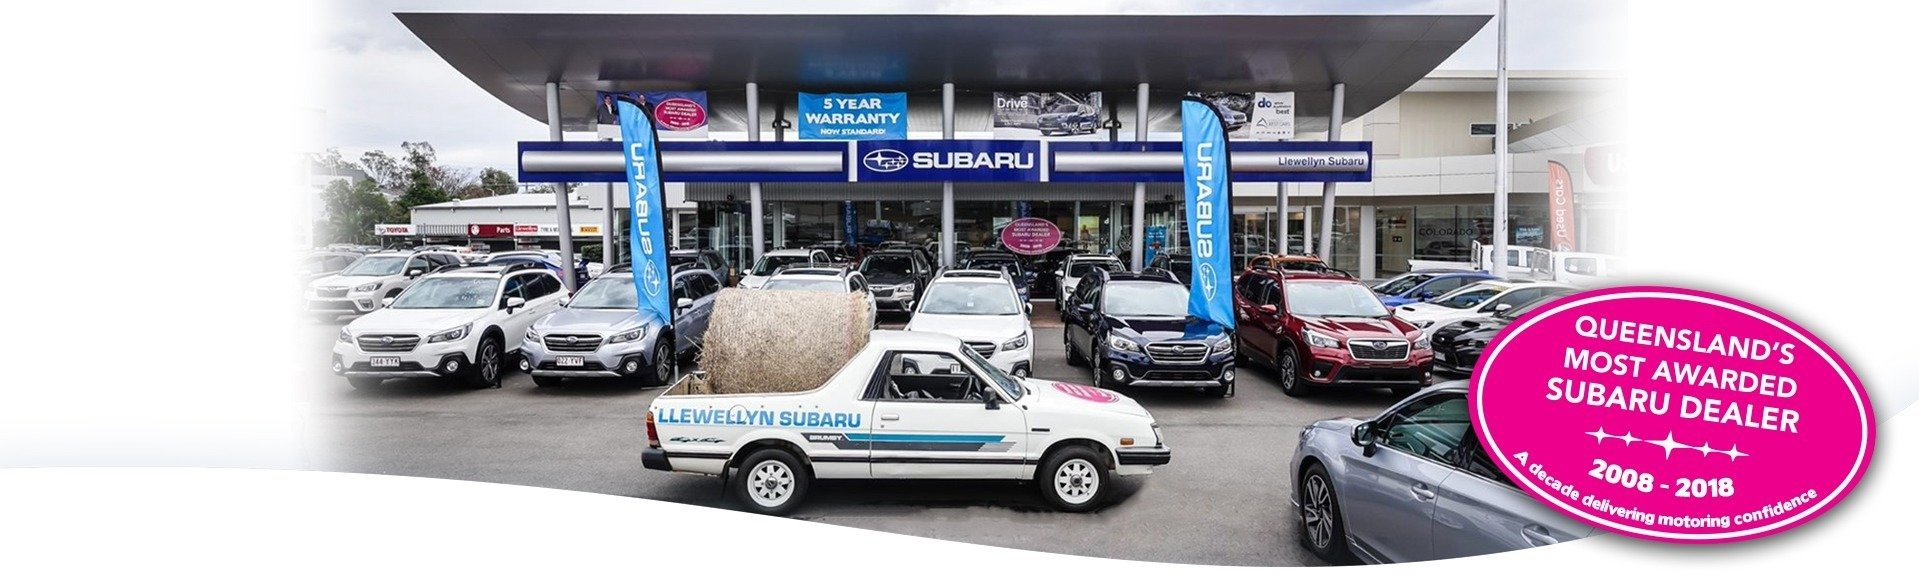 QLD's Most Awarded Subaru Dealer